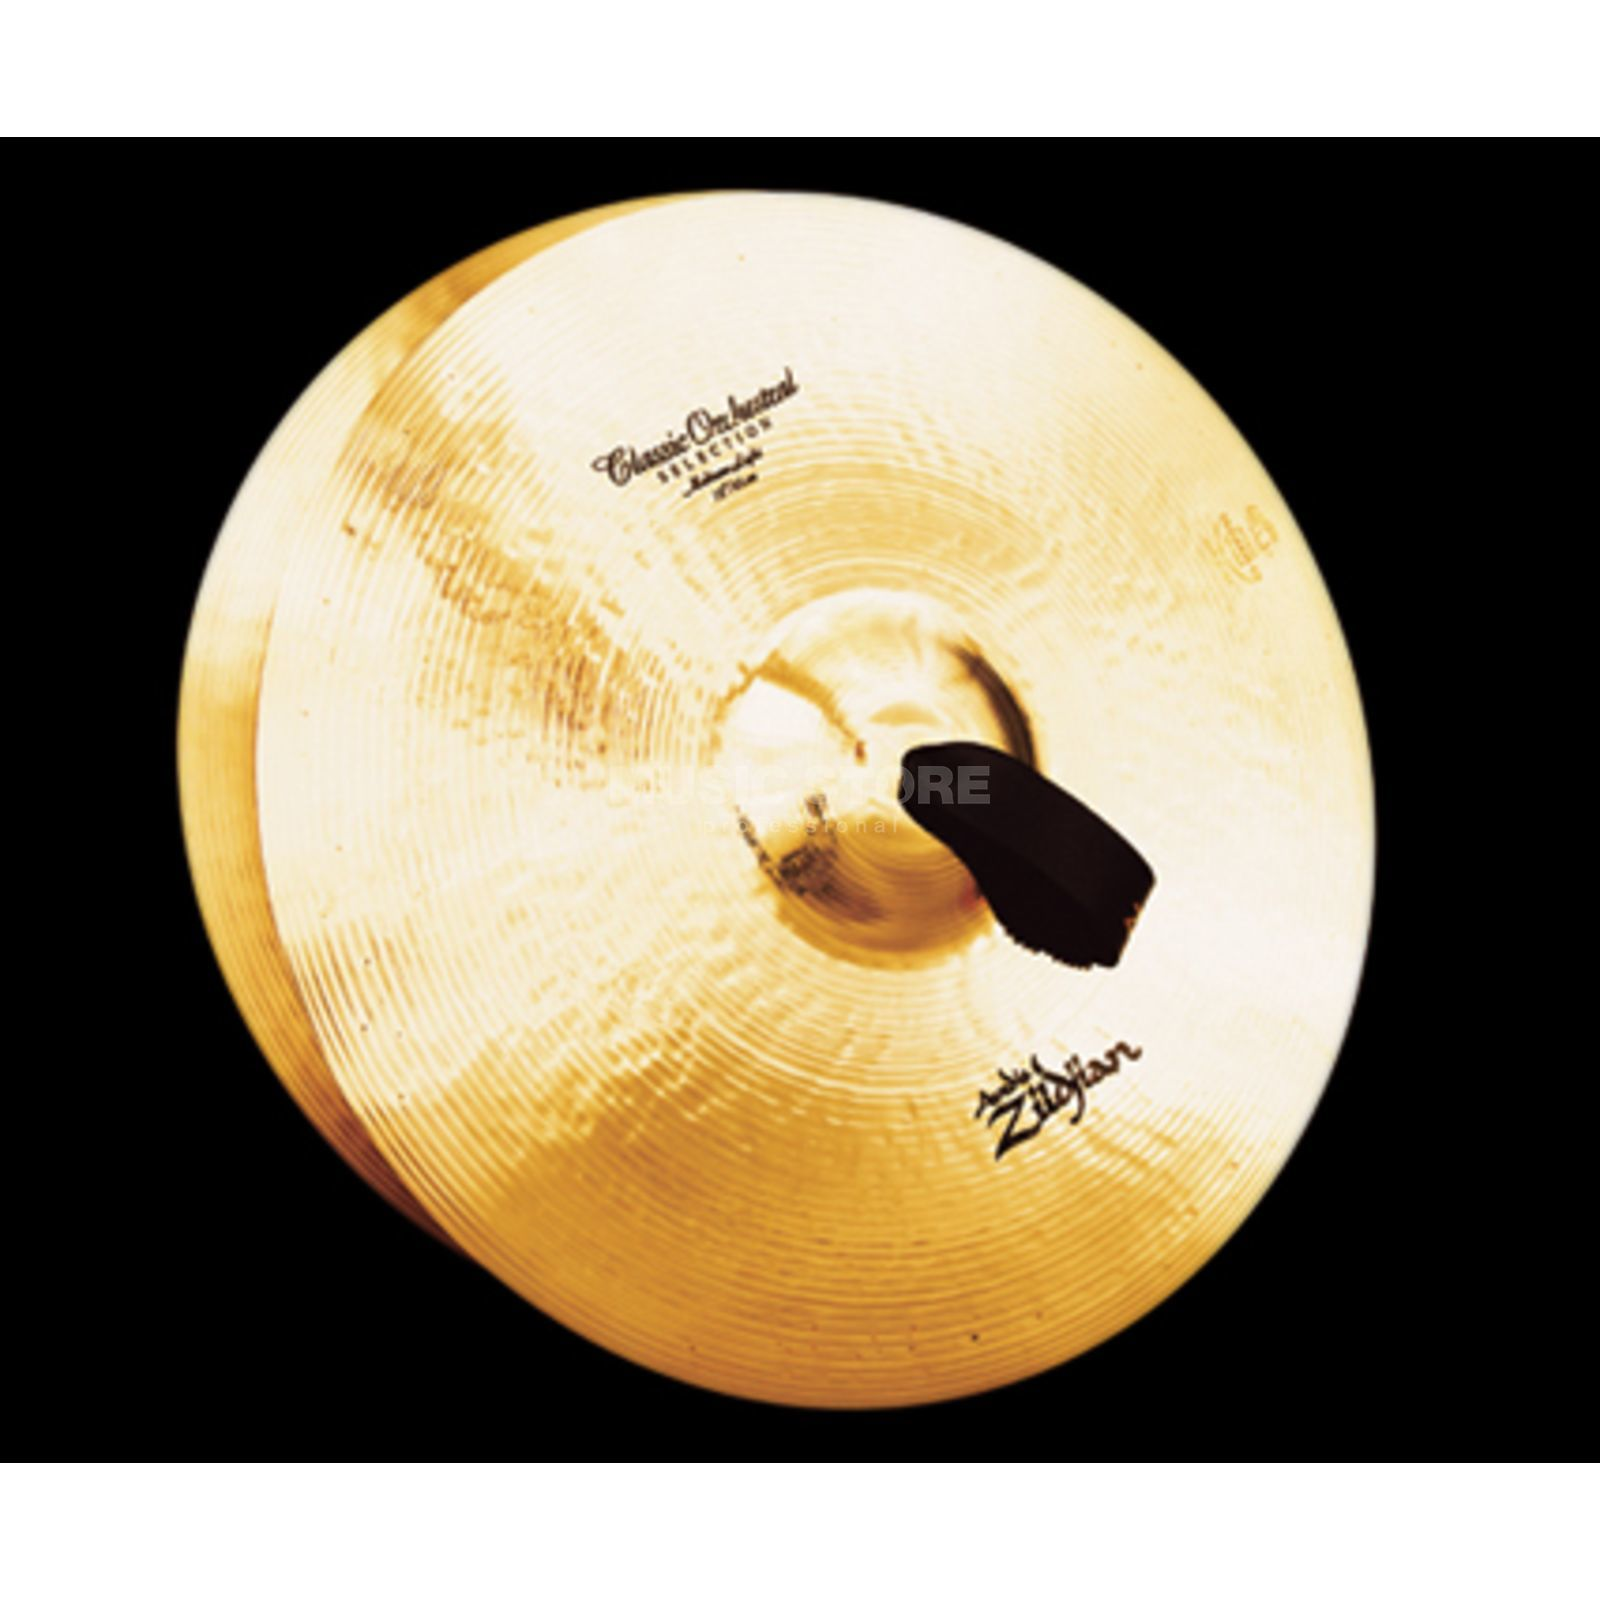 "Zildjian Classic Orchesterbecken 18"", Medium Light Produktbild"